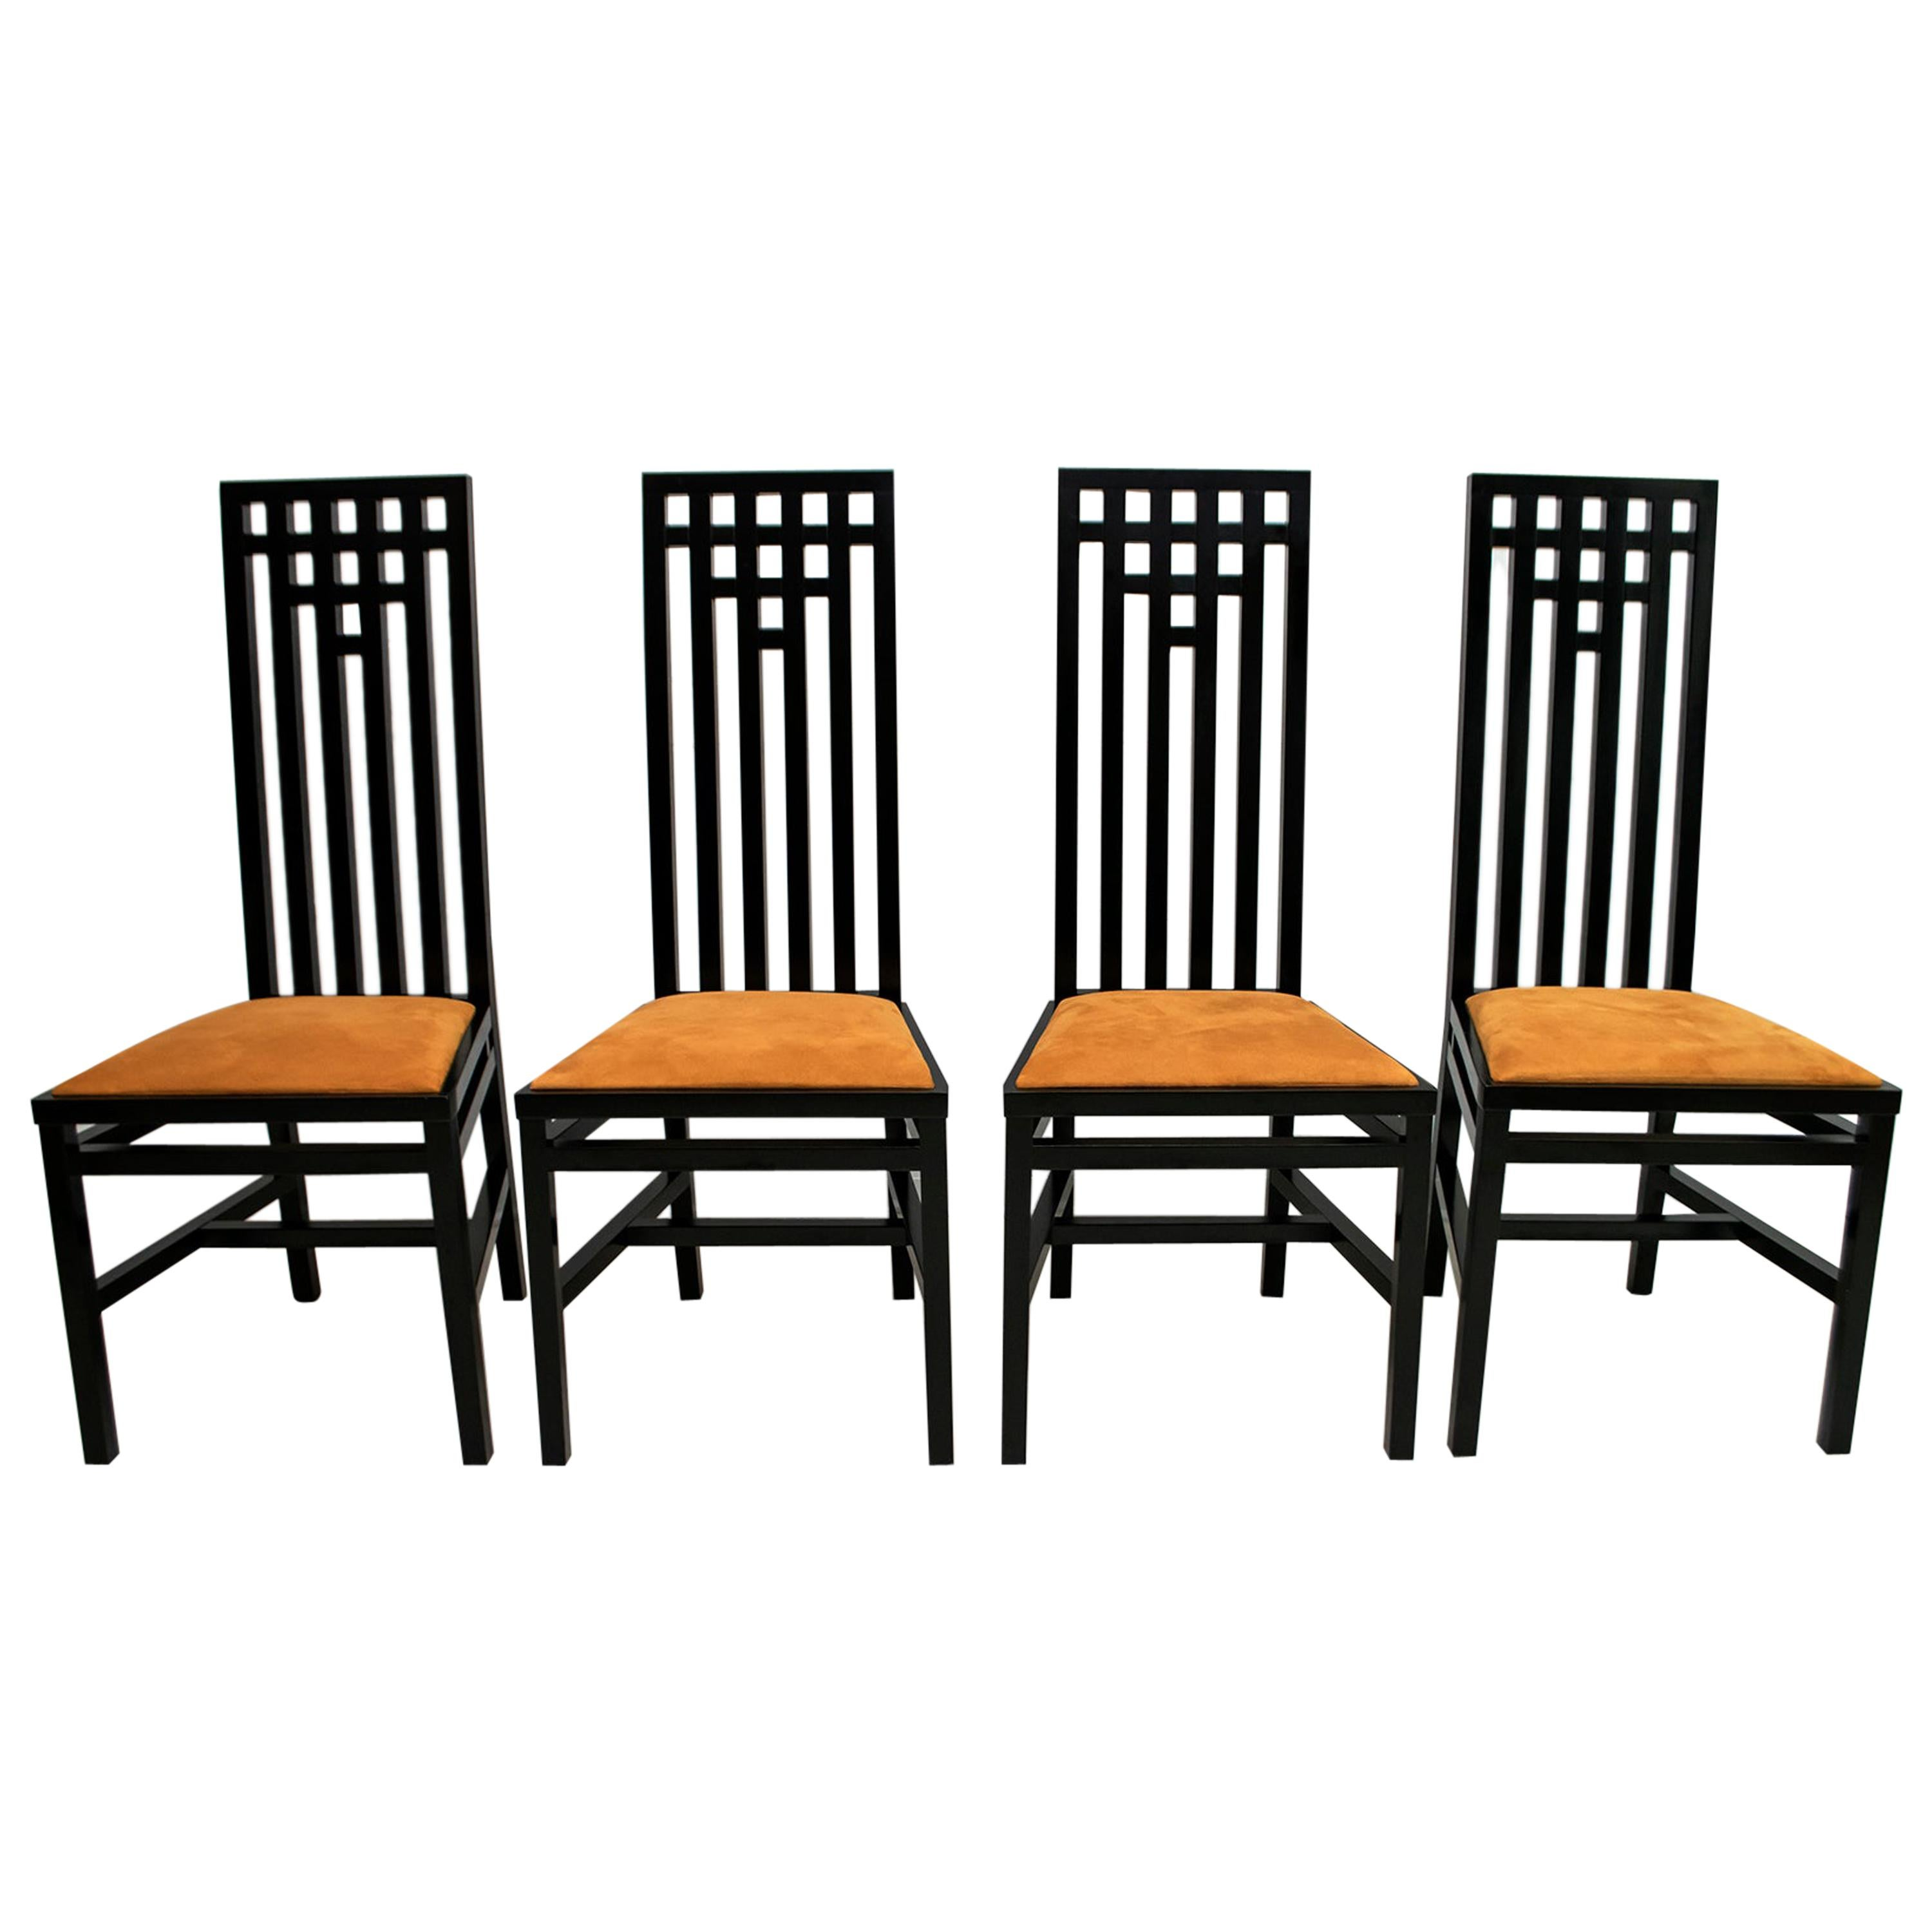 After Charles Rennie Mackintosh 4 Black Lacquered High-Backed Chairs, 1979